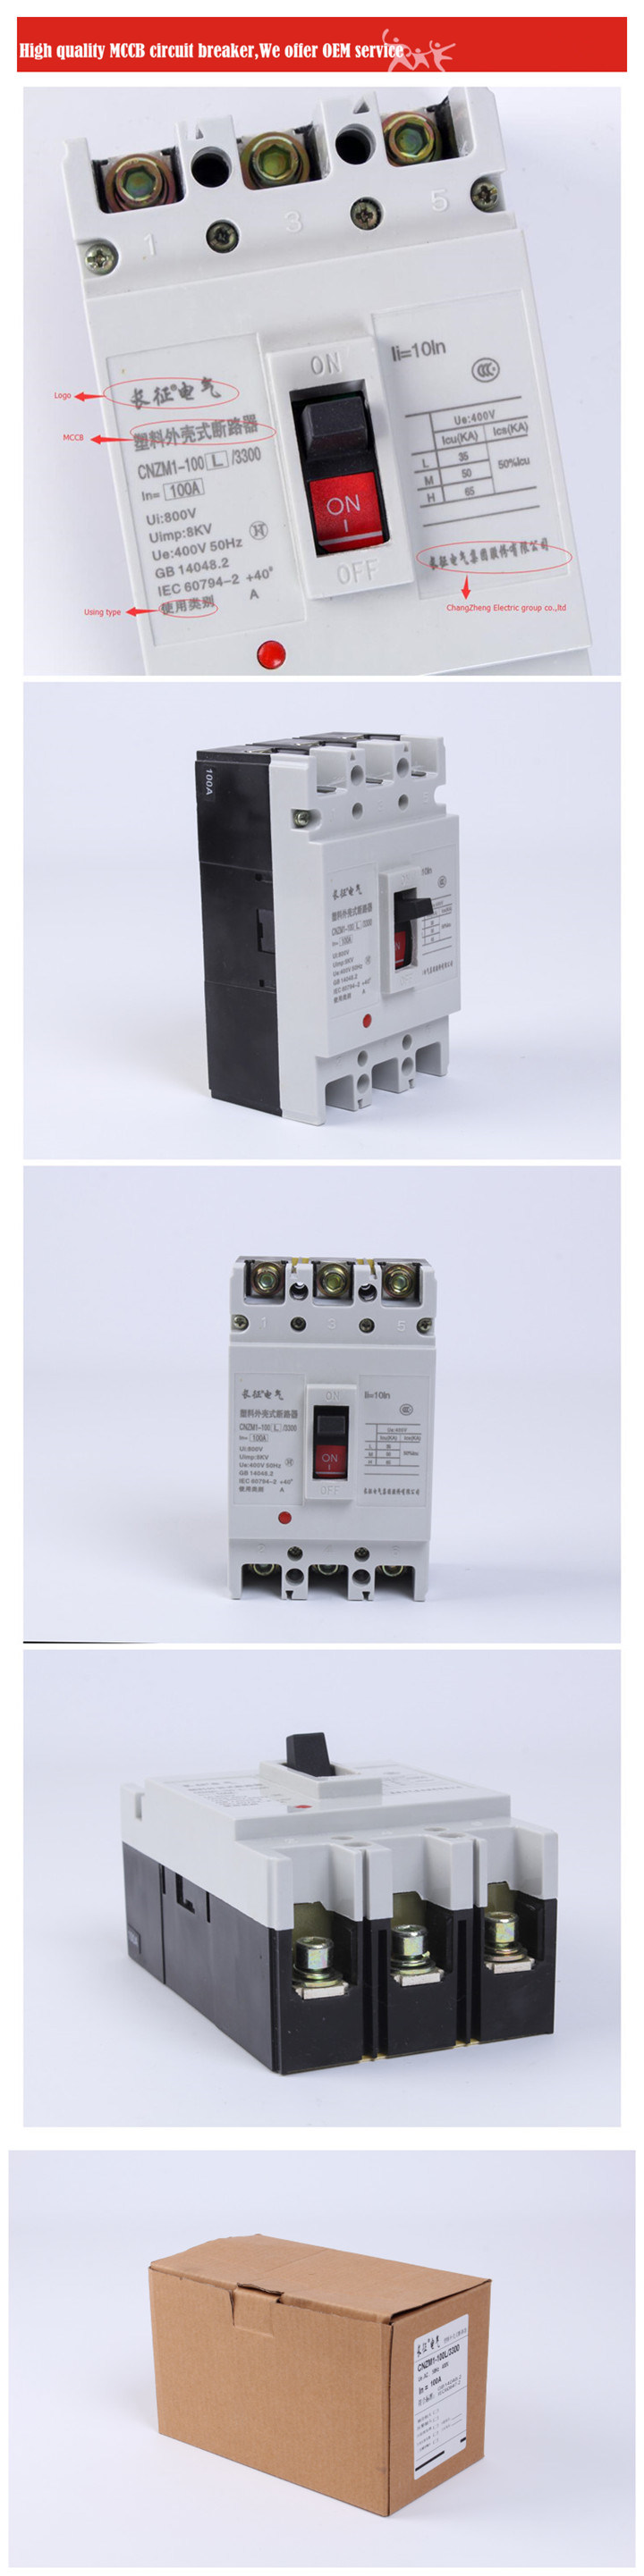 400A Circuit Breaker Electrical Switch MCCB MCB RCCB 3p